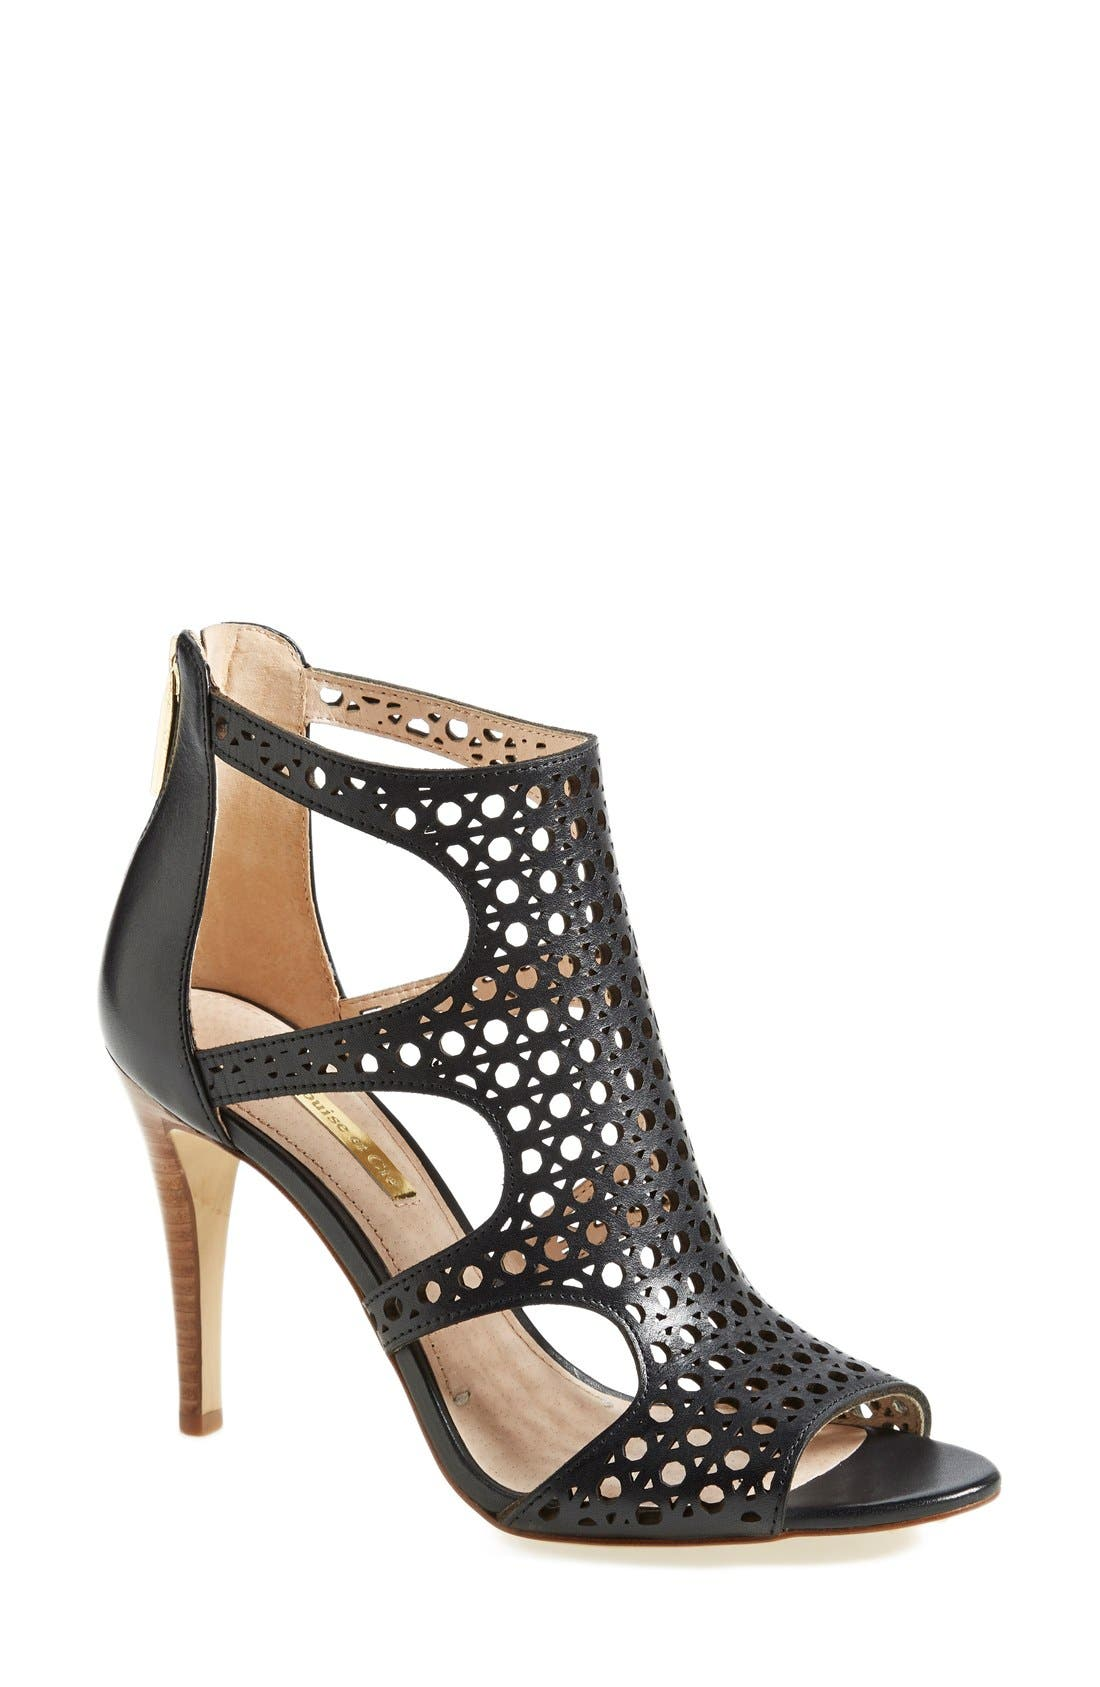 Alternate Image 1 Selected - Louise et Cie 'Winnie 2' Perforated Leather Pump (Women)